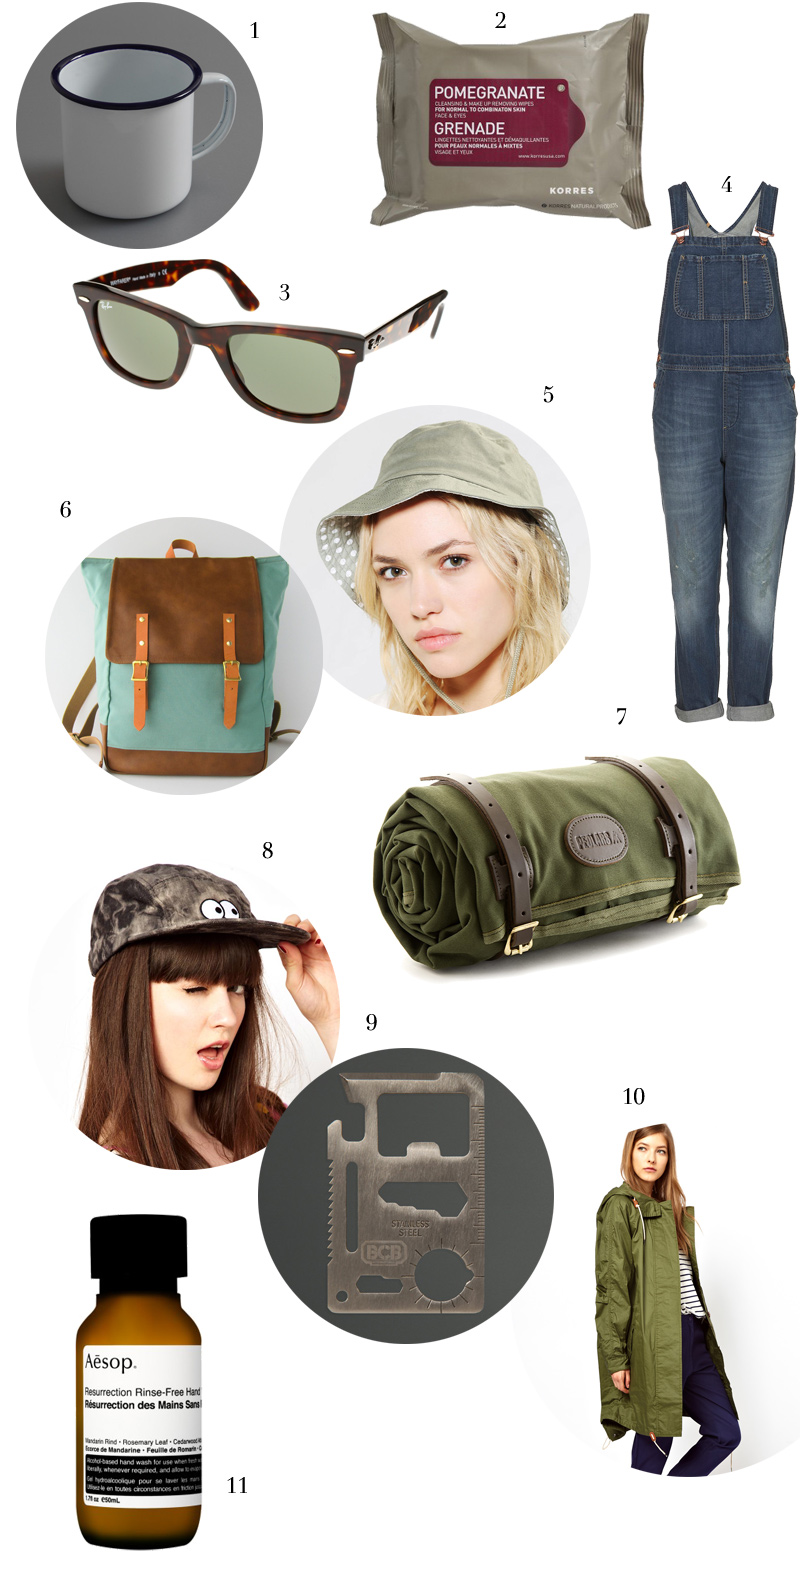 Festival and Camping Essentials via WeeBirdy.com